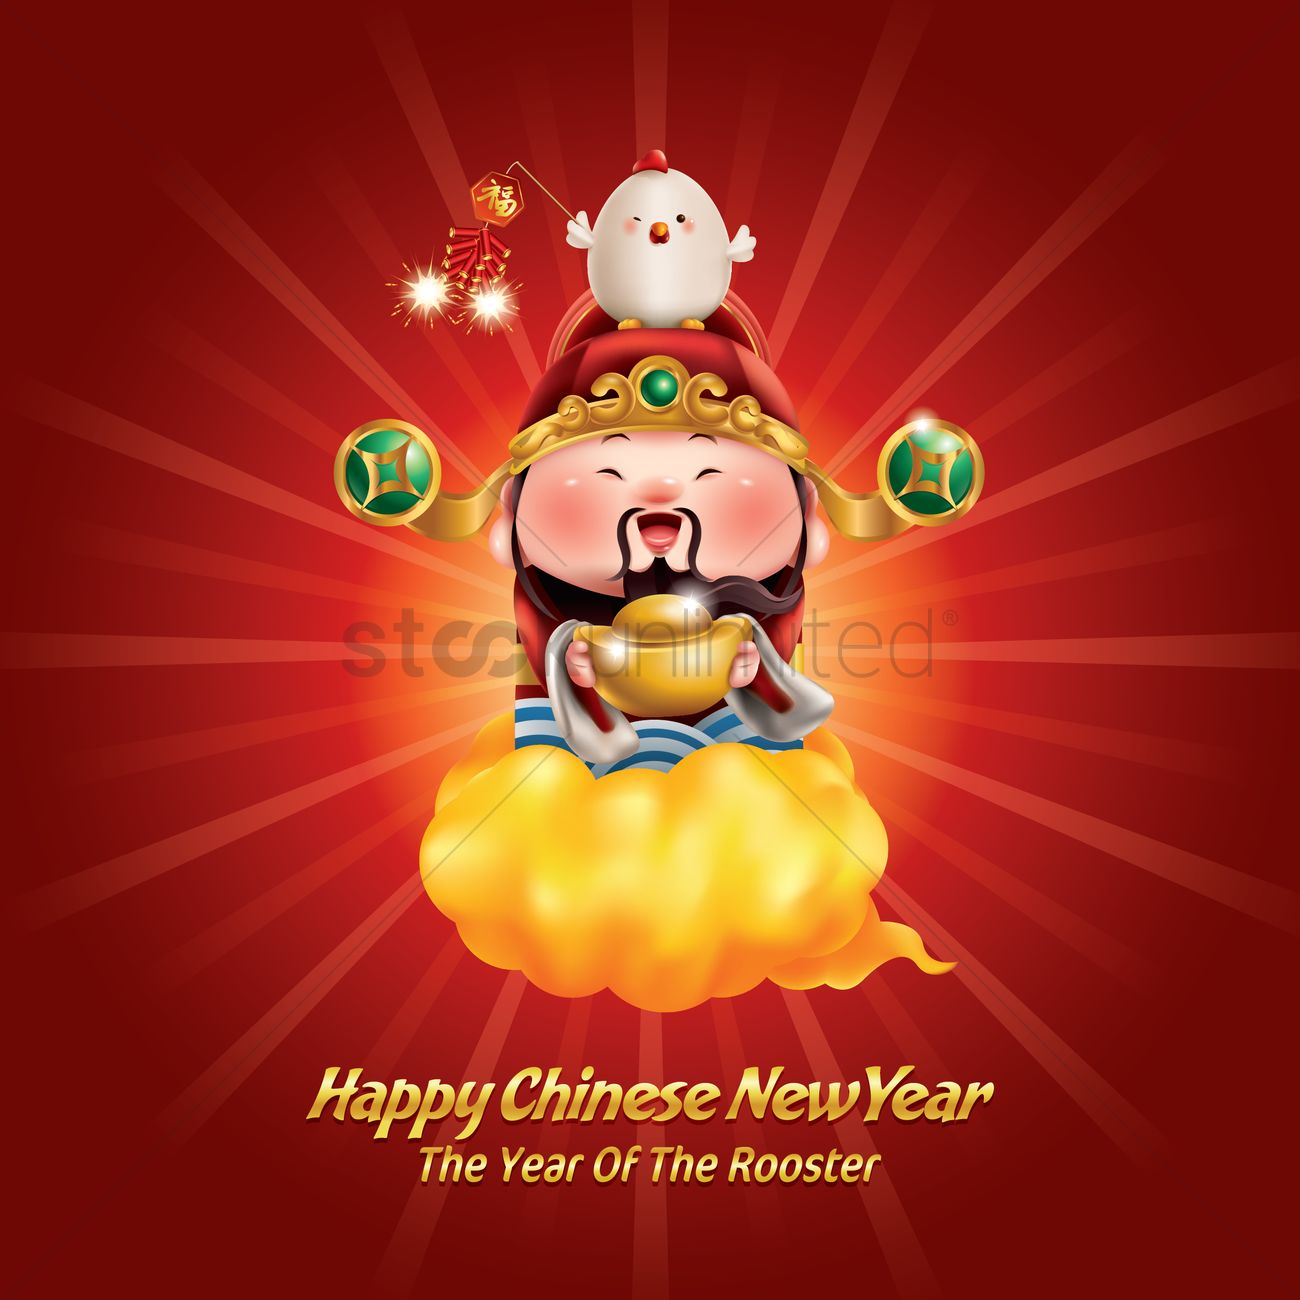 happy chinese new year design vector graphic - Chinese New Year 1978